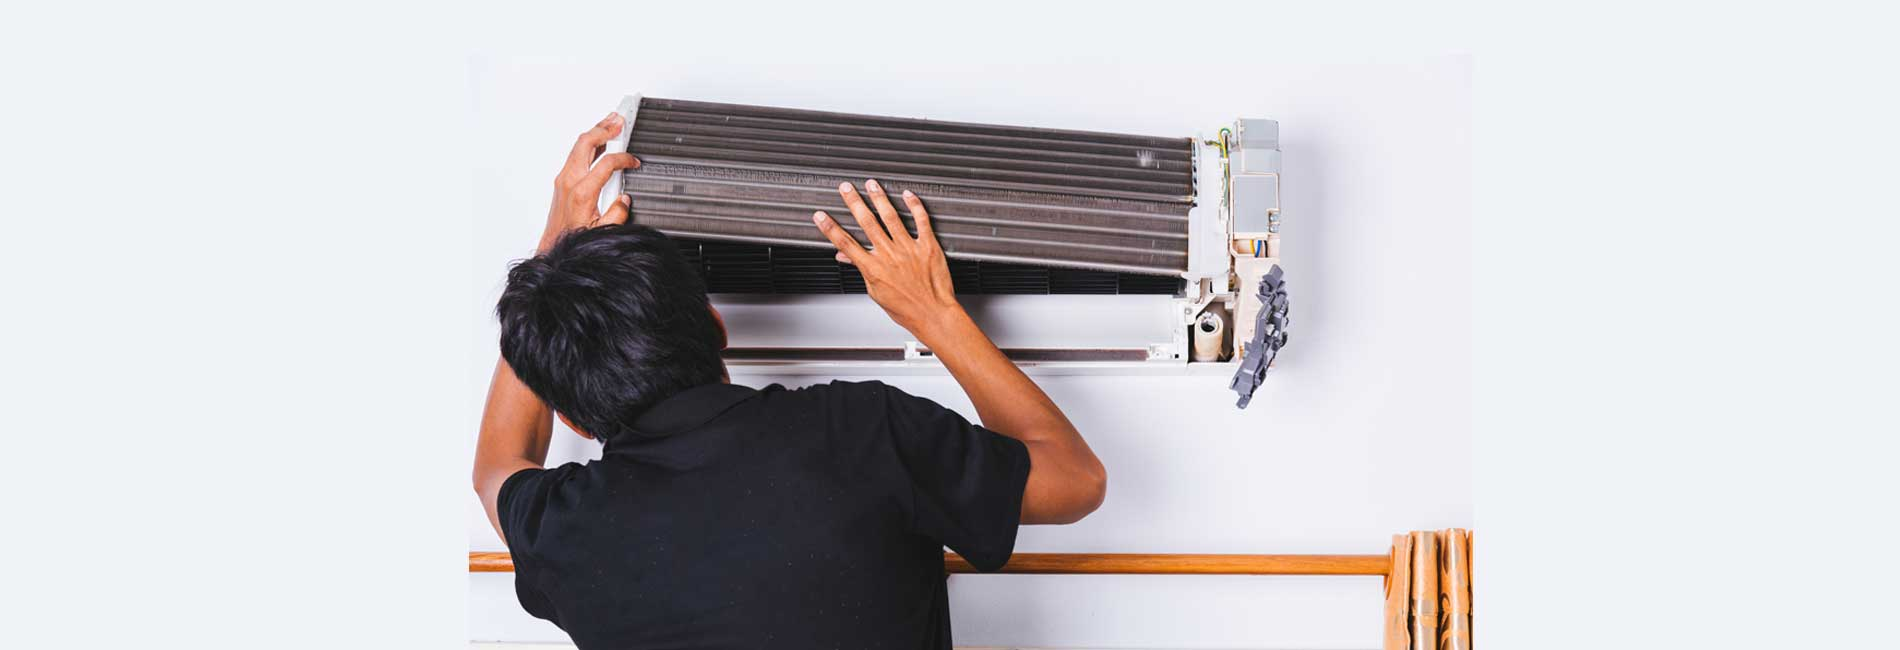 Lloyd Split AC Uninstallation in Velappanchavadi